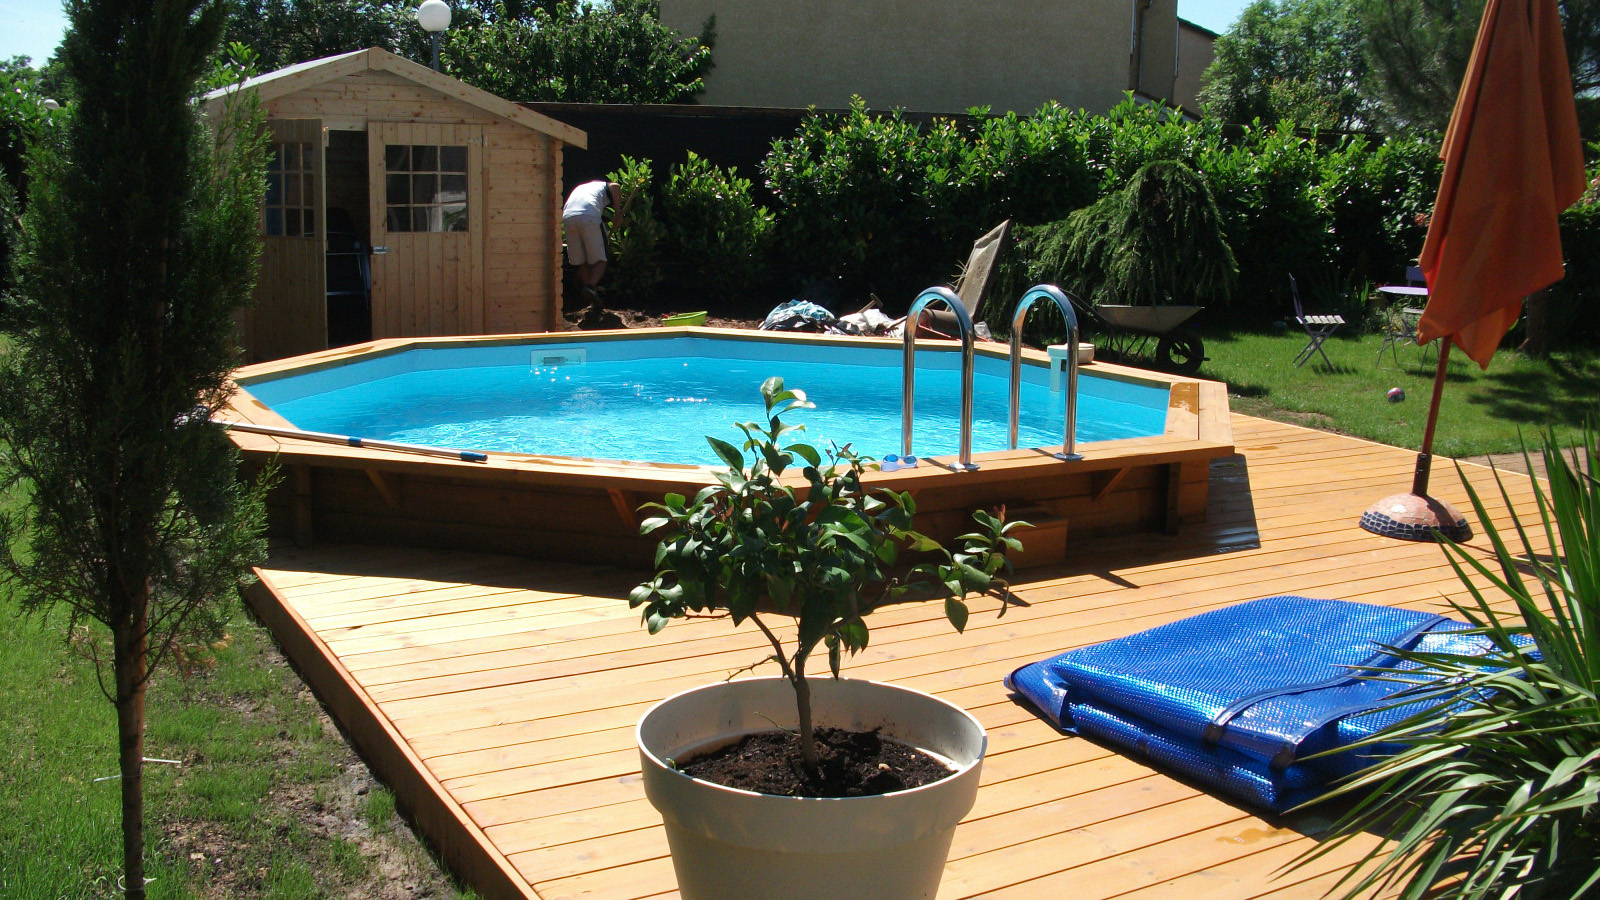 piscine hors sol avec terrasse bois piscine en bois. Black Bedroom Furniture Sets. Home Design Ideas